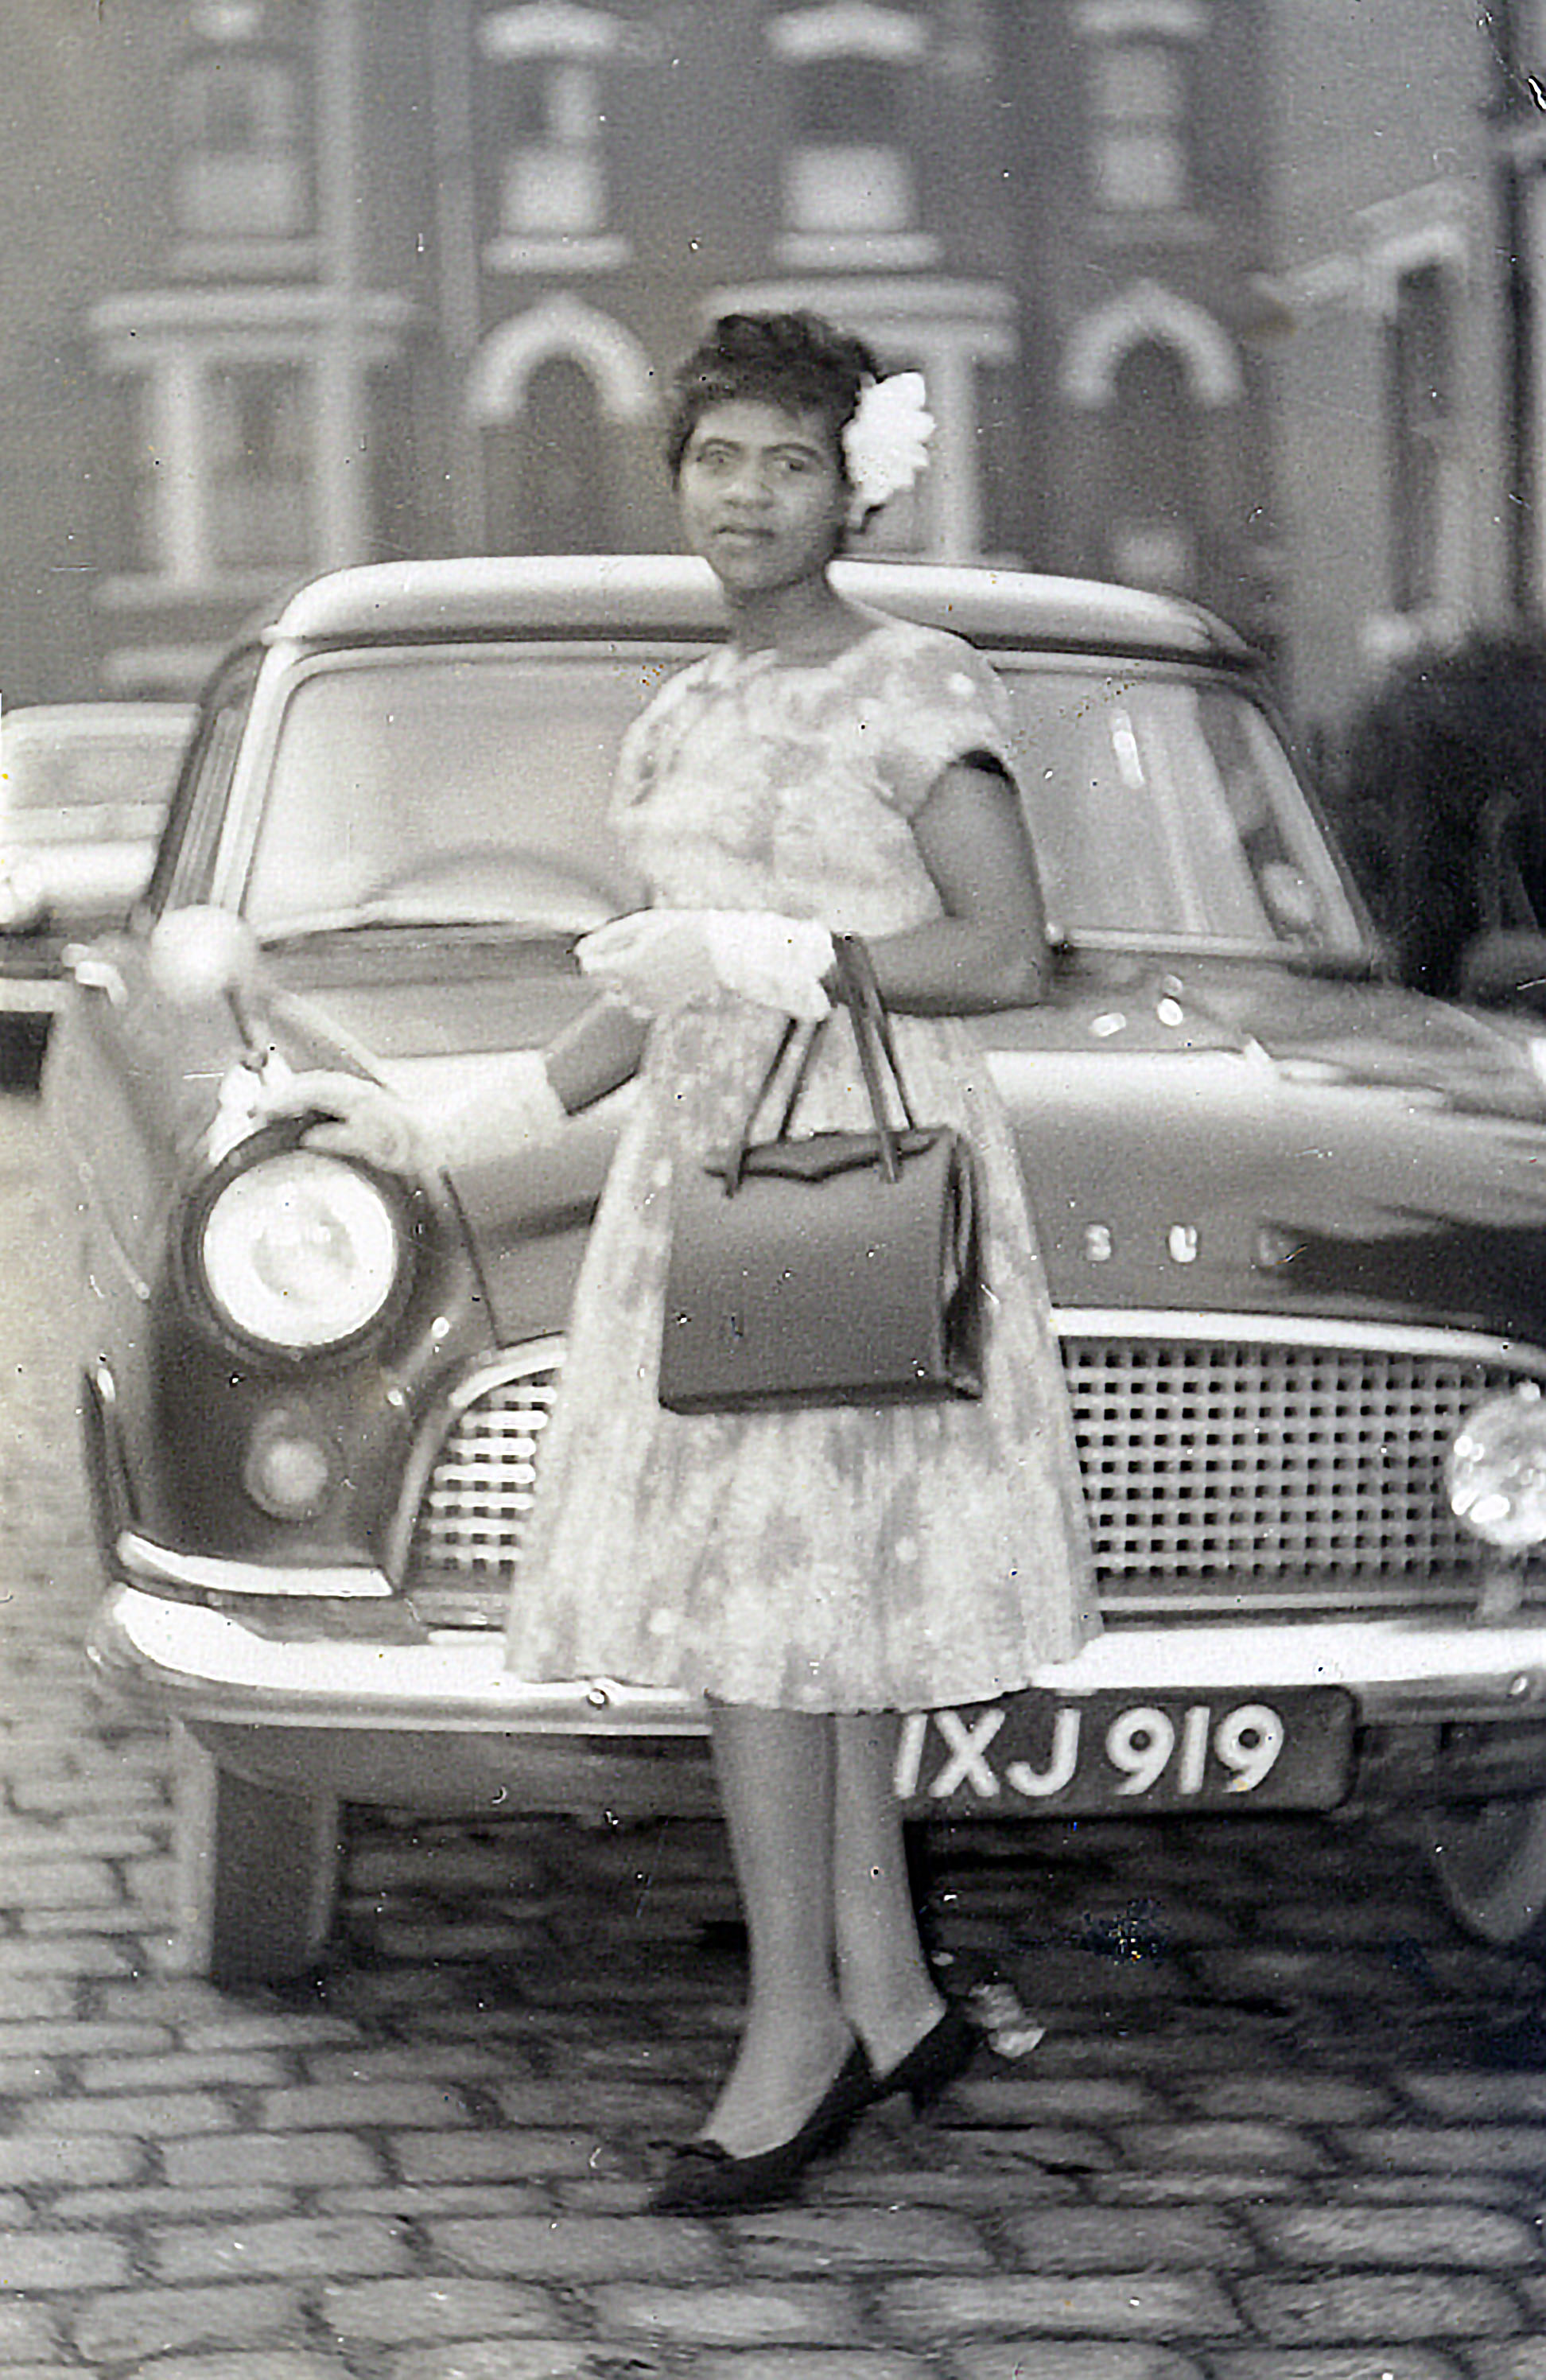 Black and white photograph showing a young woman in a white dress and gloves, standing in front of a car.